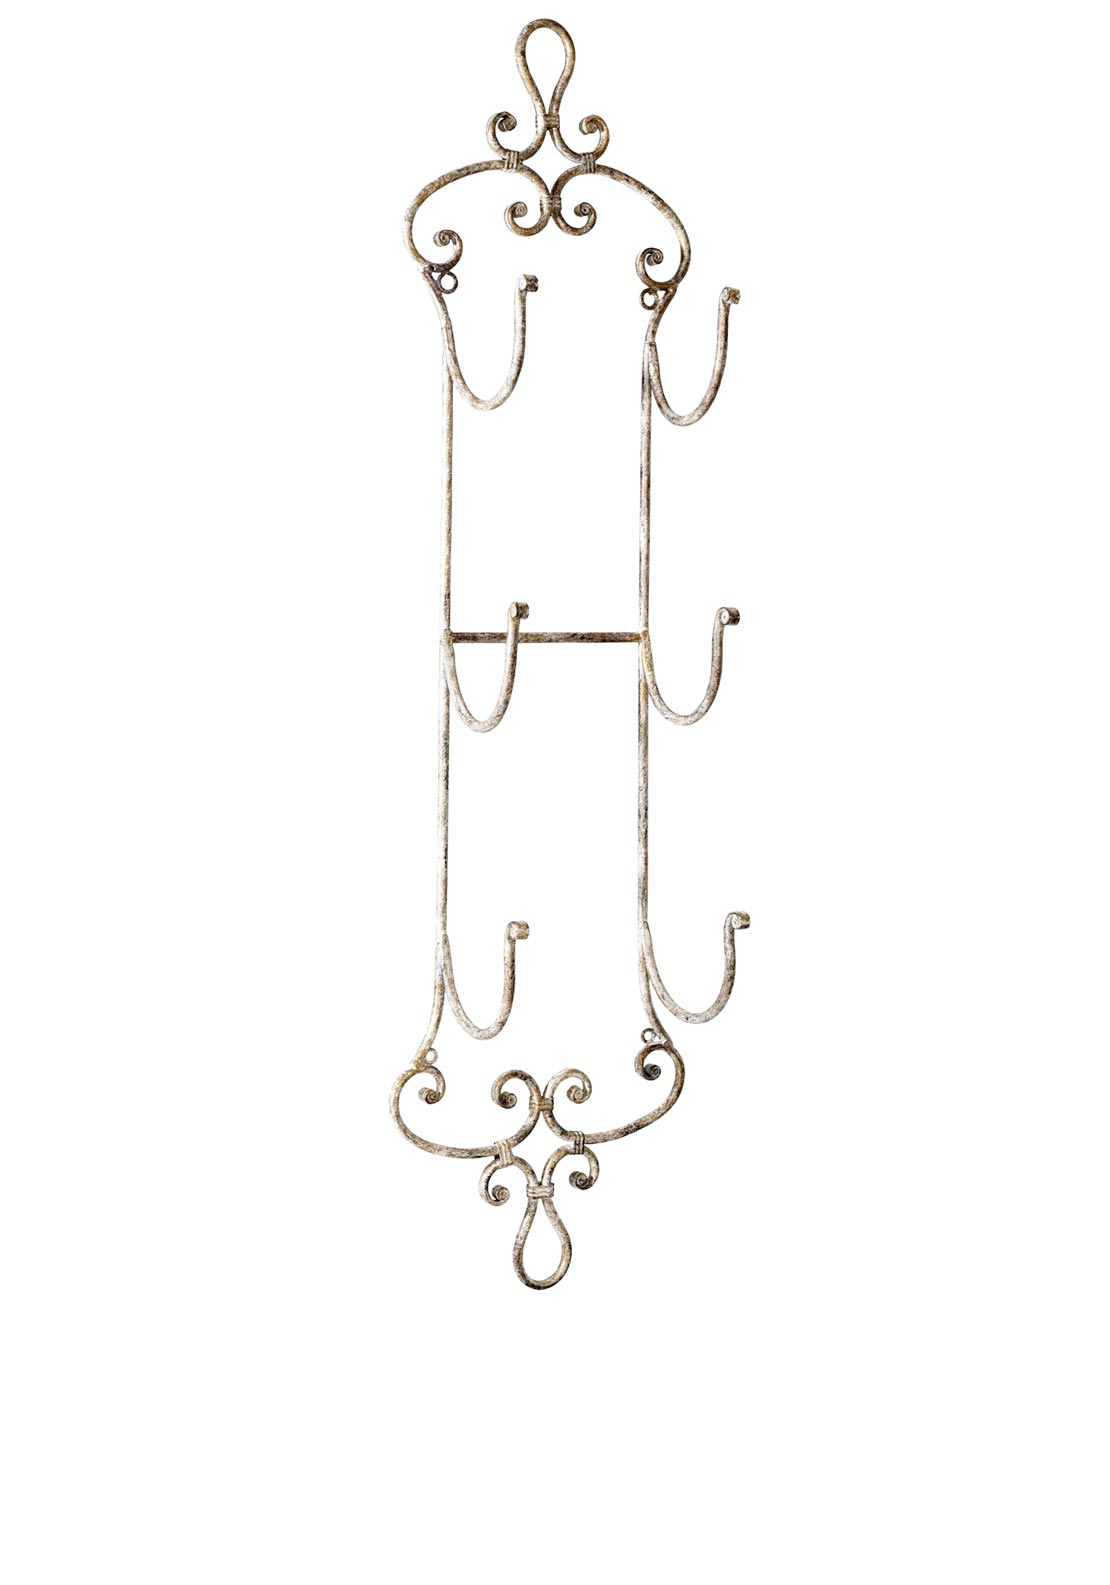 Mindy Brownes Wall Mounted Paper or Towel Rack, 39 inches